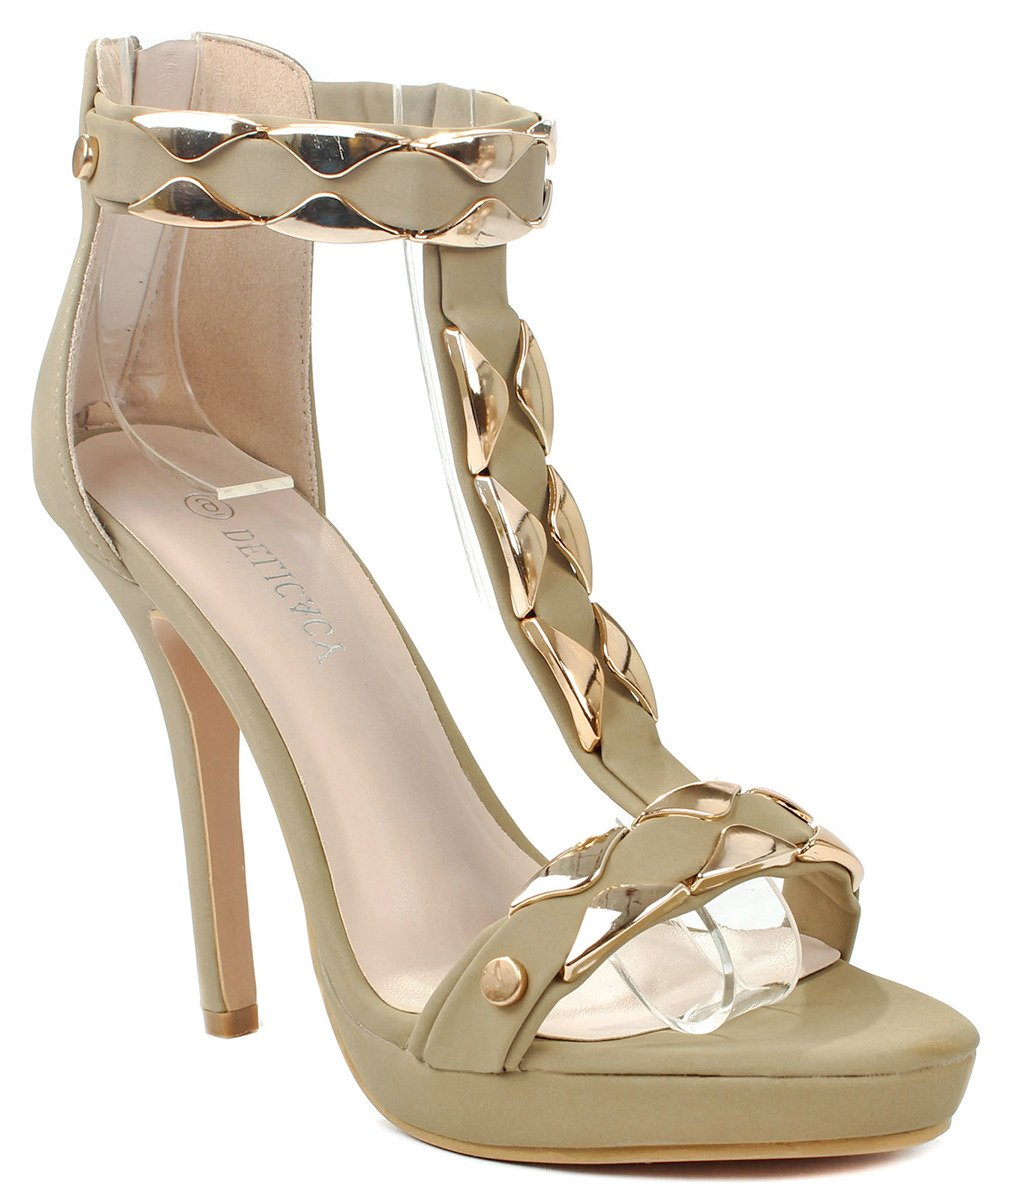 Fantastic34 Gold Plating T-Strap Ankle Cuff Platform High Heel Dress Sandal Shoes B00WFHOGDS 5.5 B(M) US|Taupe Nub